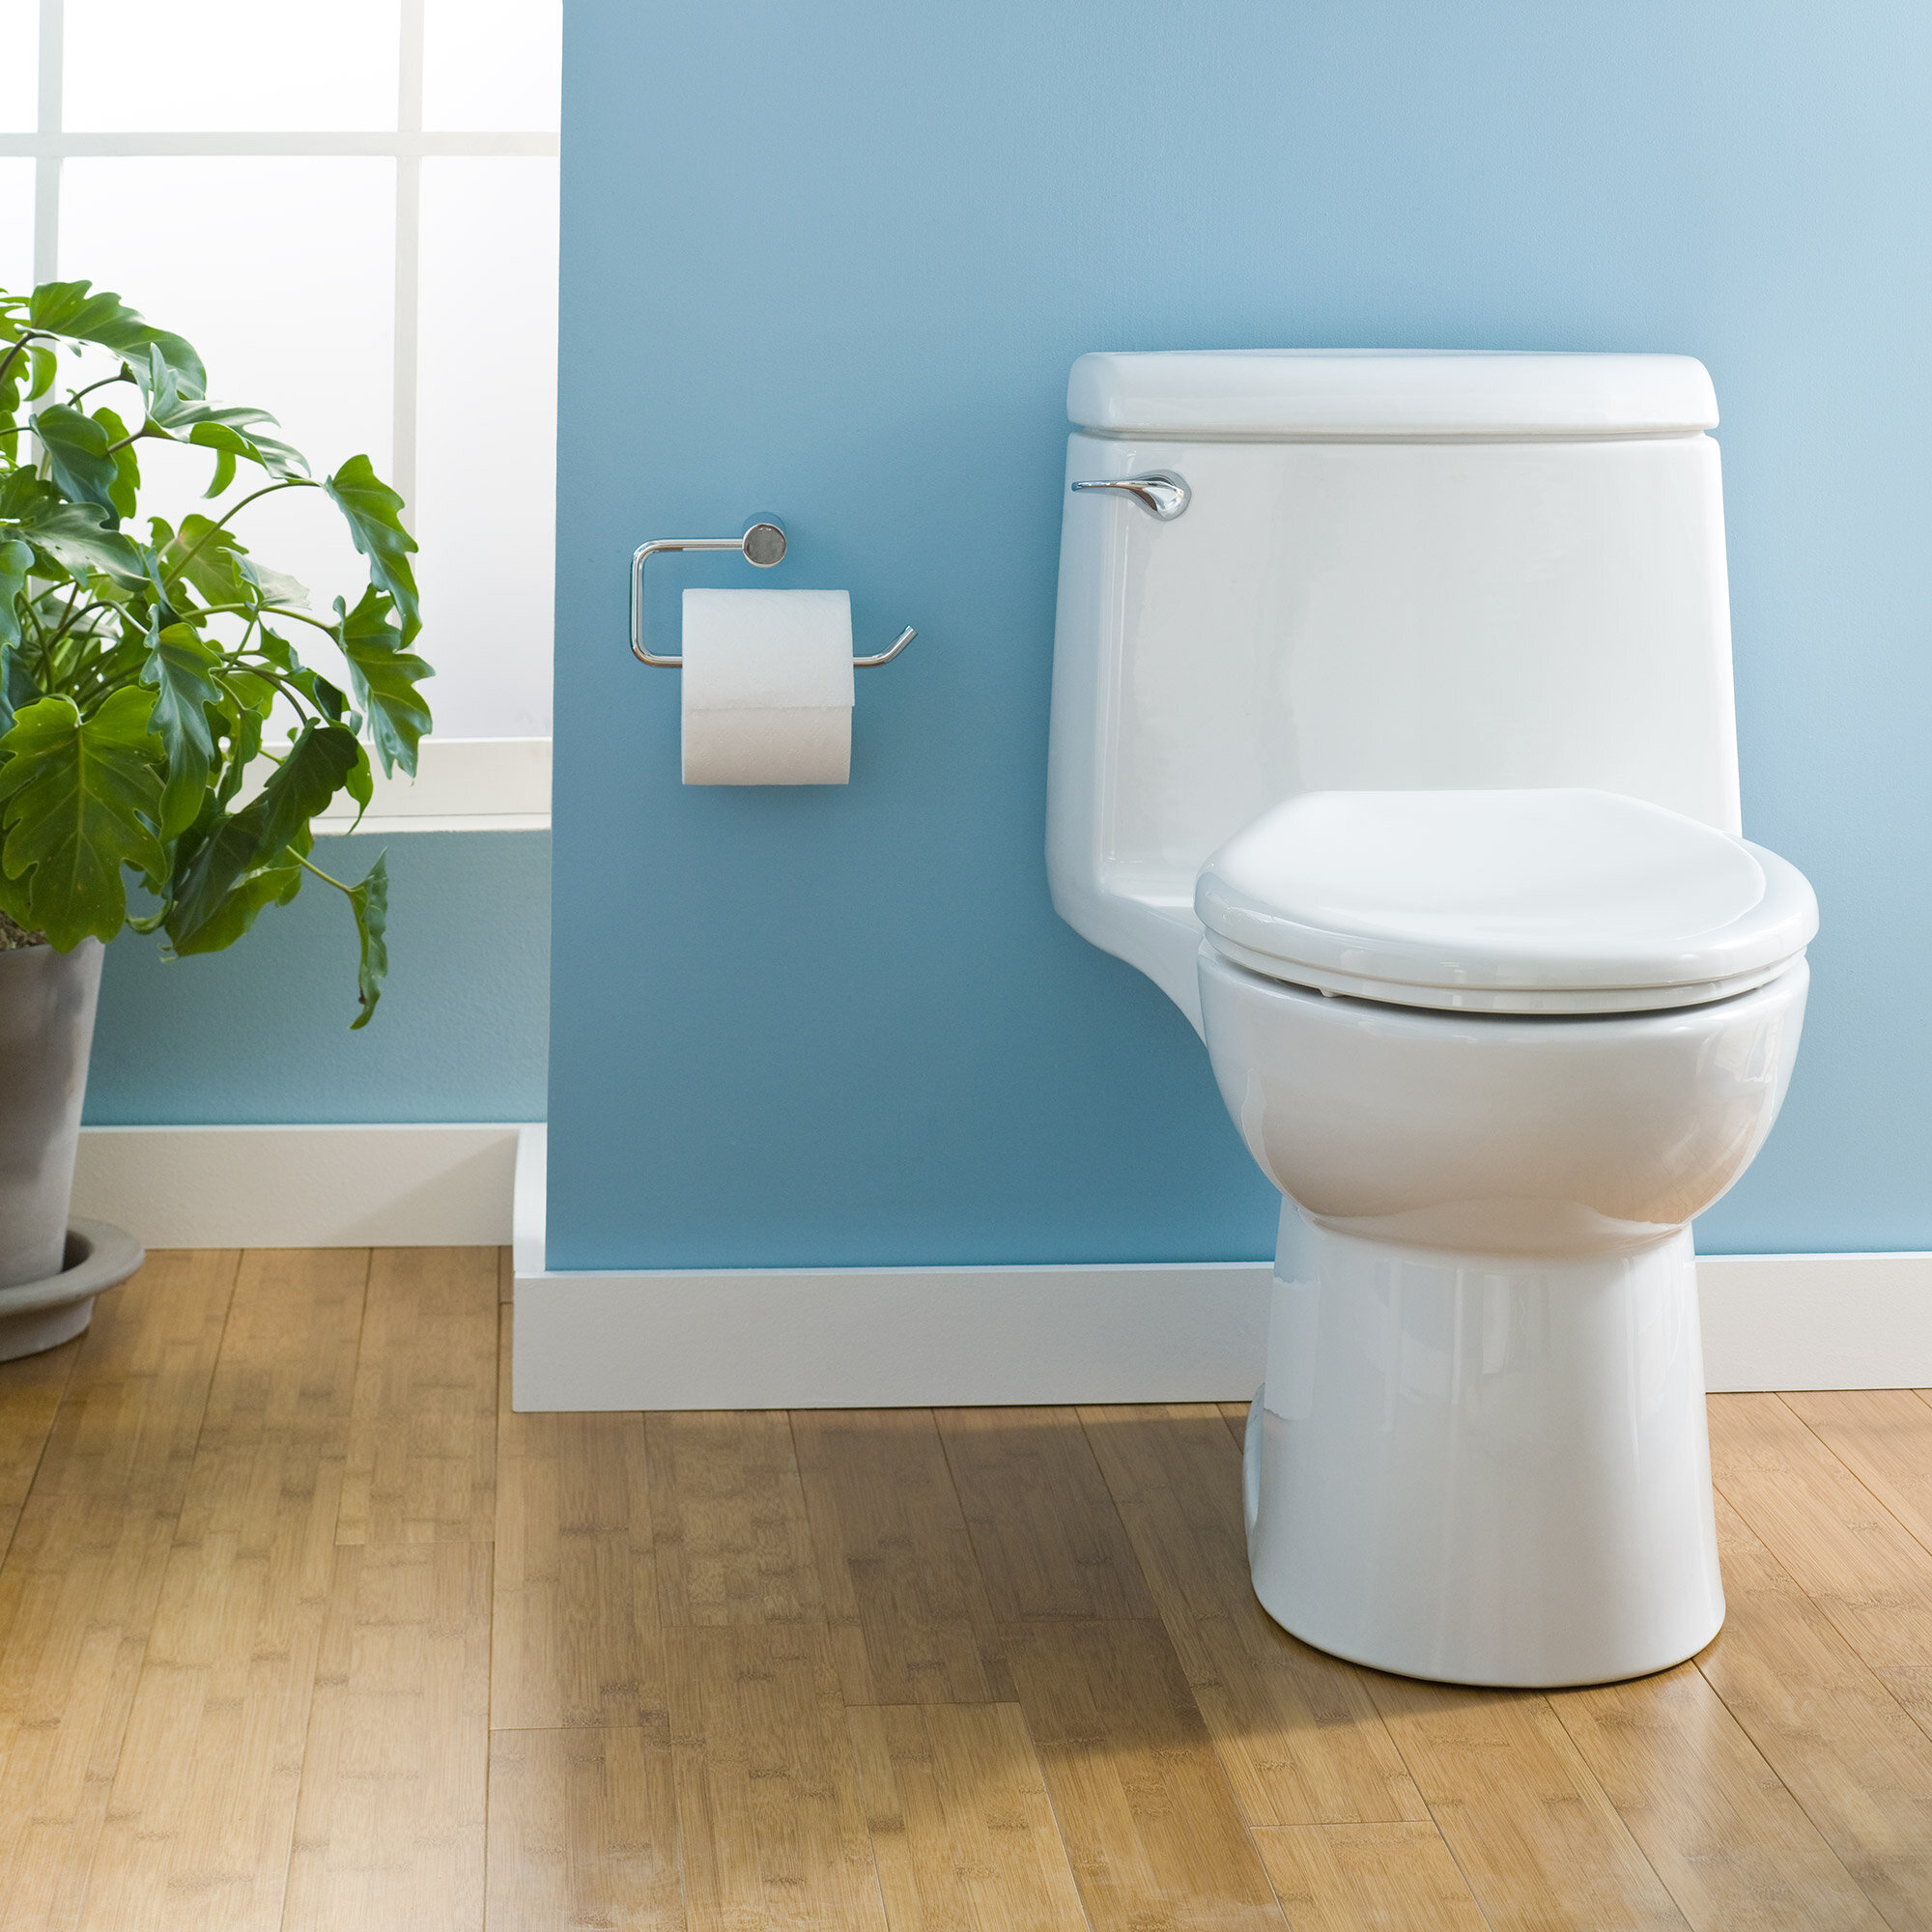 Top Rated One Piece Elongated Toilet